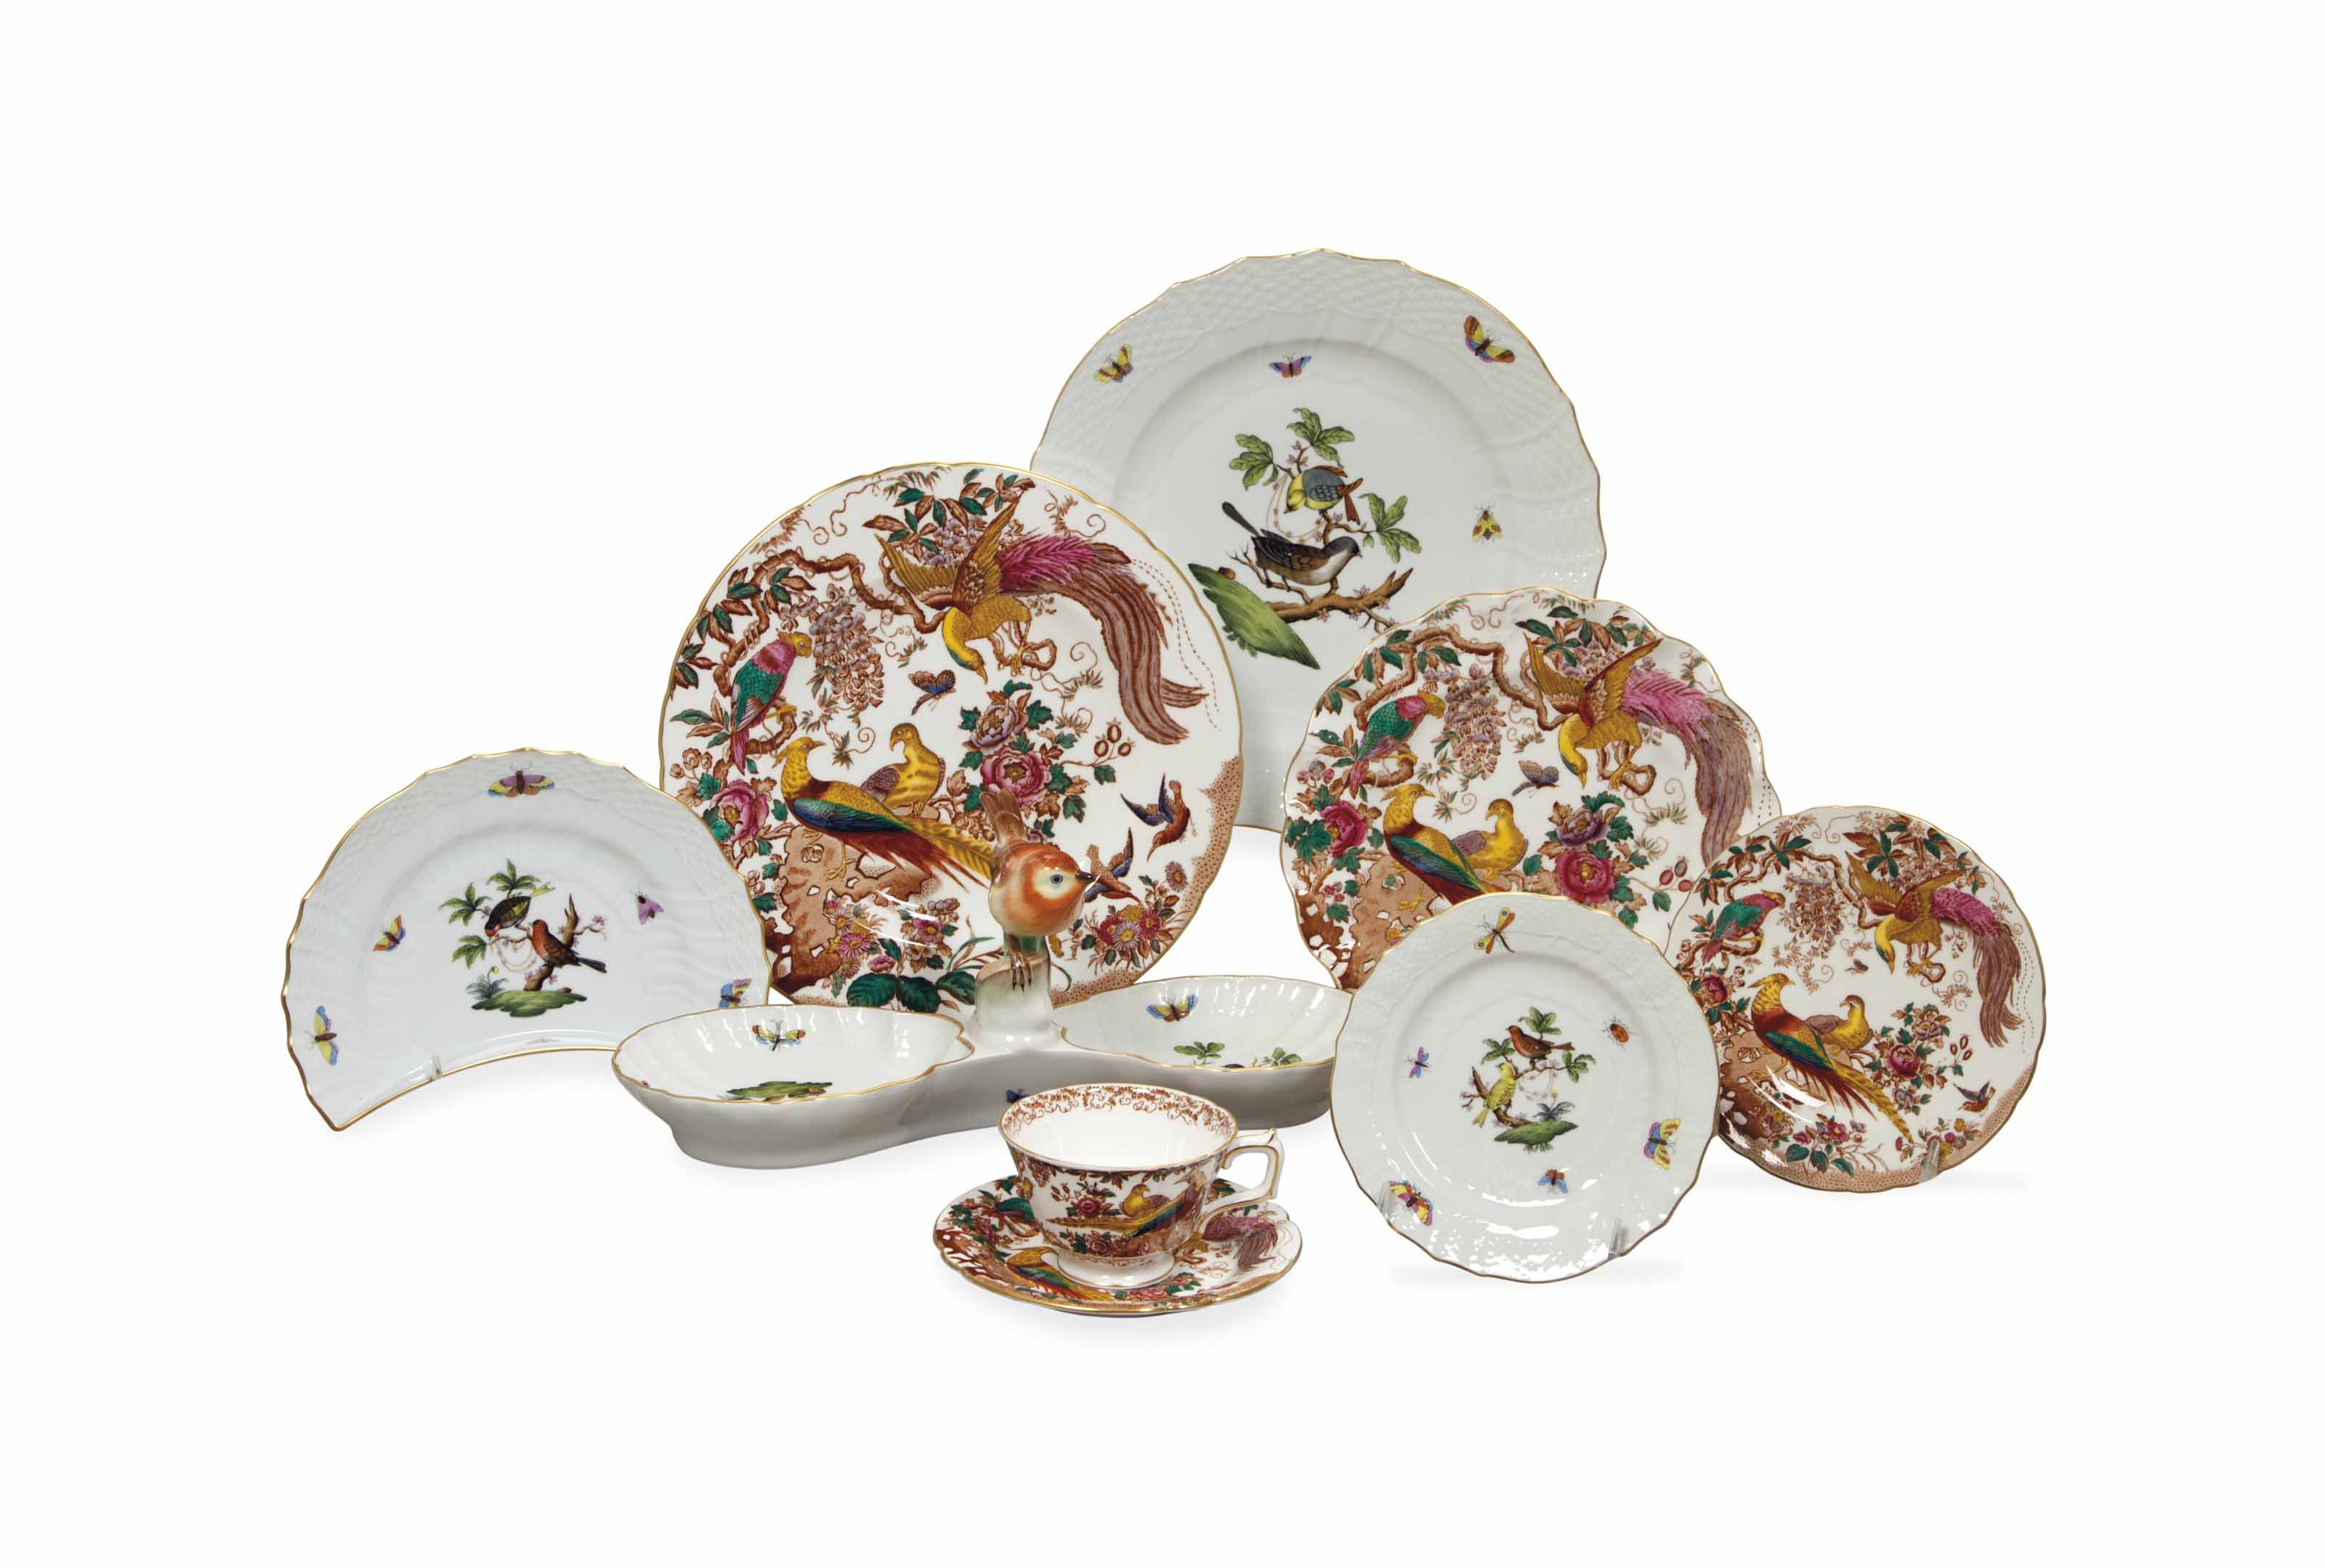 AN ENGLISH AND HUNGARIAN PORCELAIN PART TABLE SERVICE RELATING TO BIRDS,